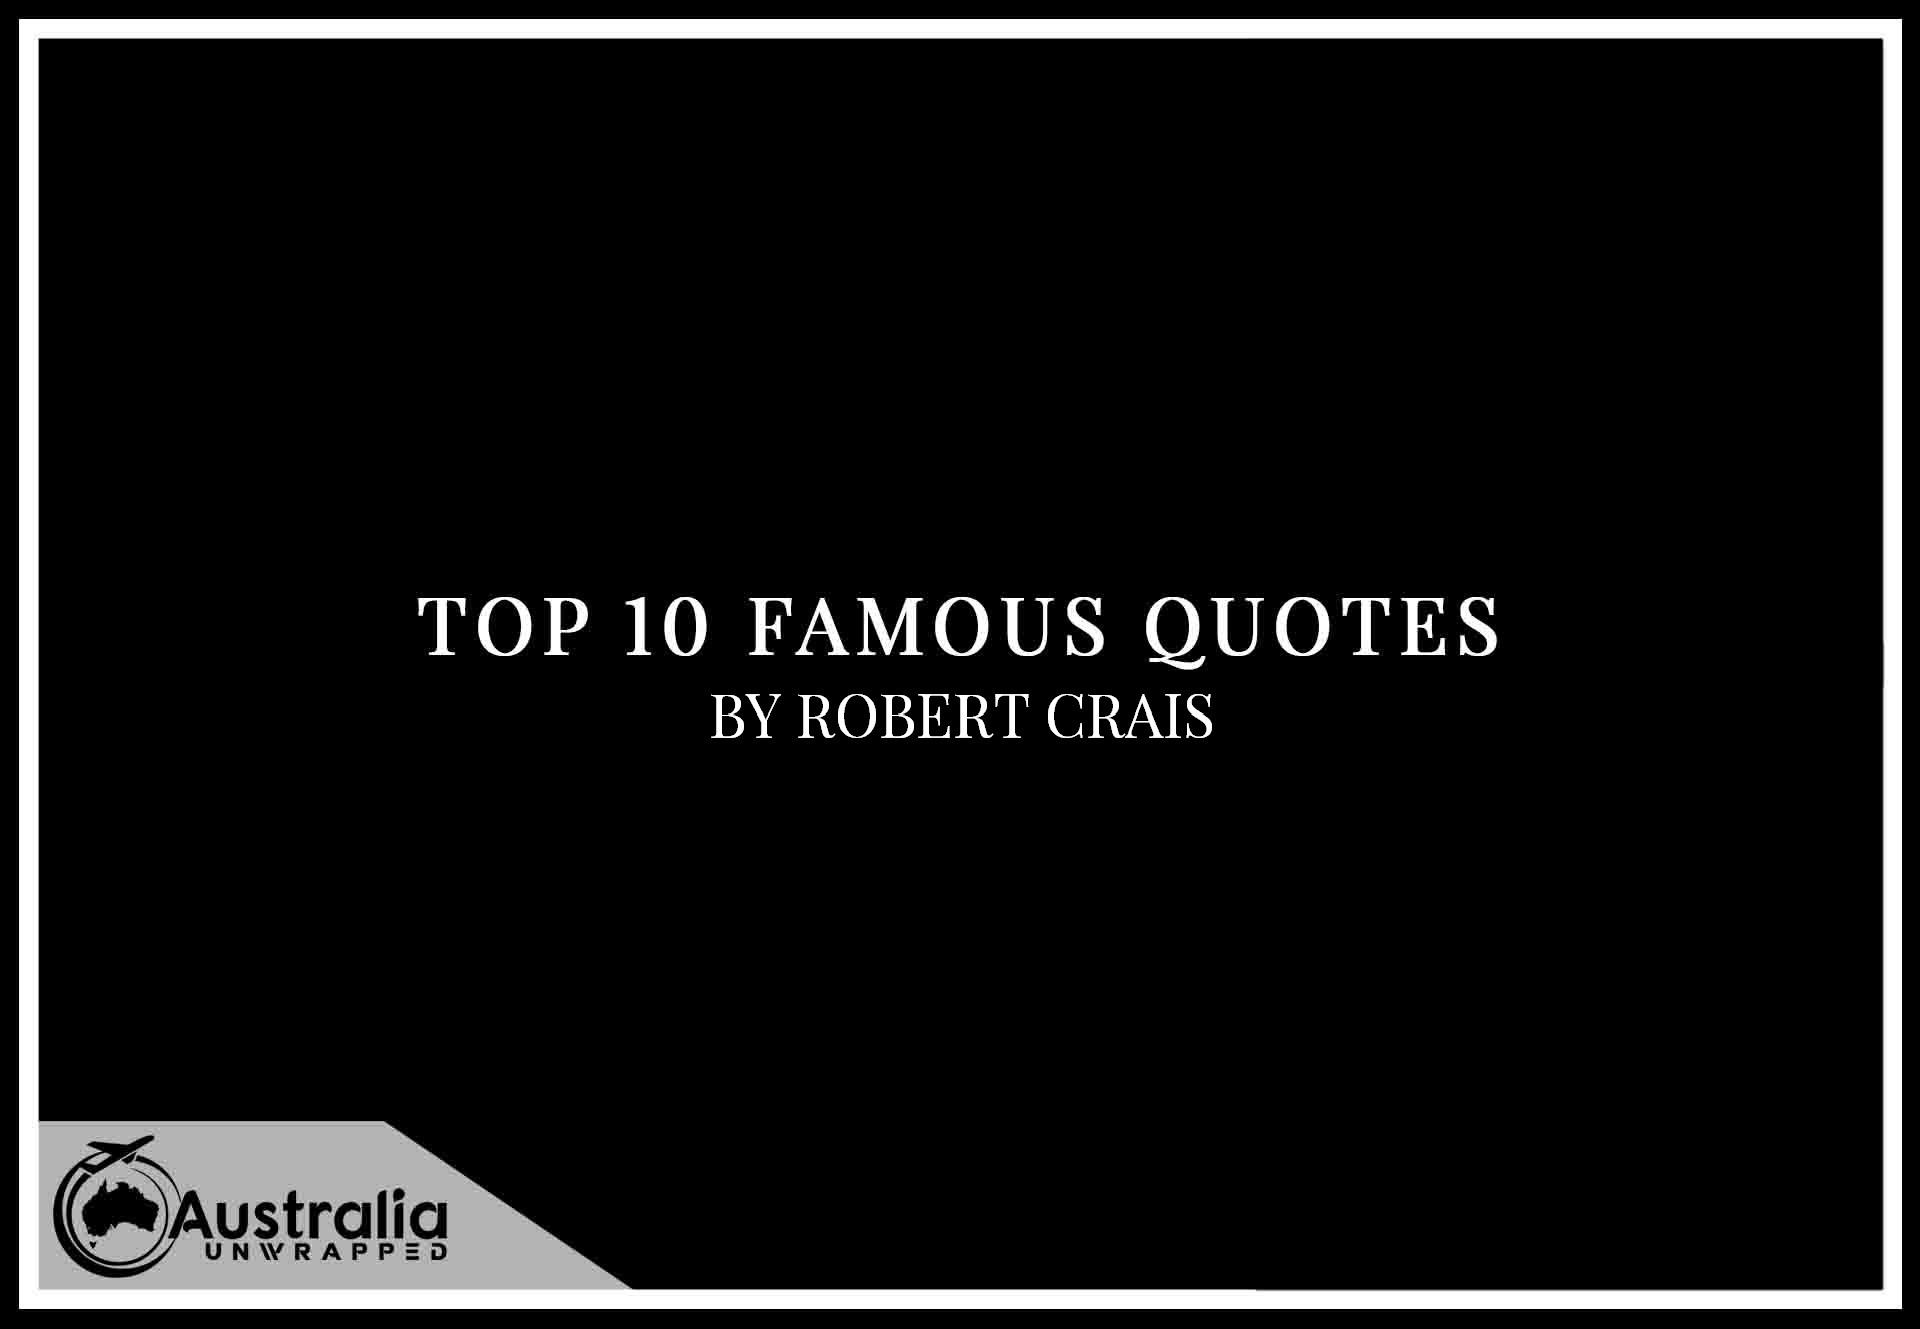 Robert Crais's Top 10 Popular and Famous Quotes